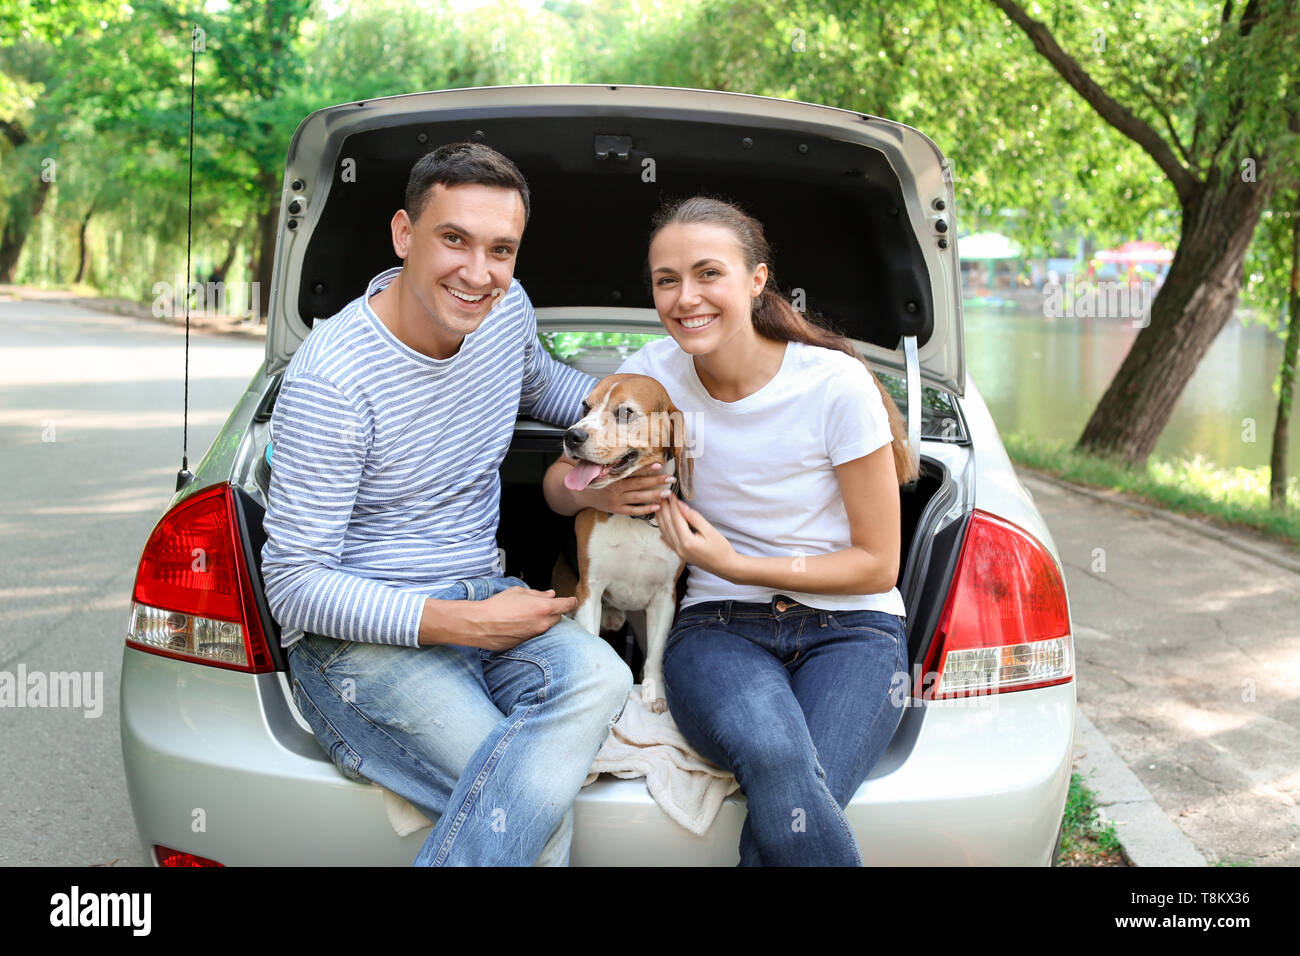 Young couple with cute dog sitting in car trunk - Stock Image